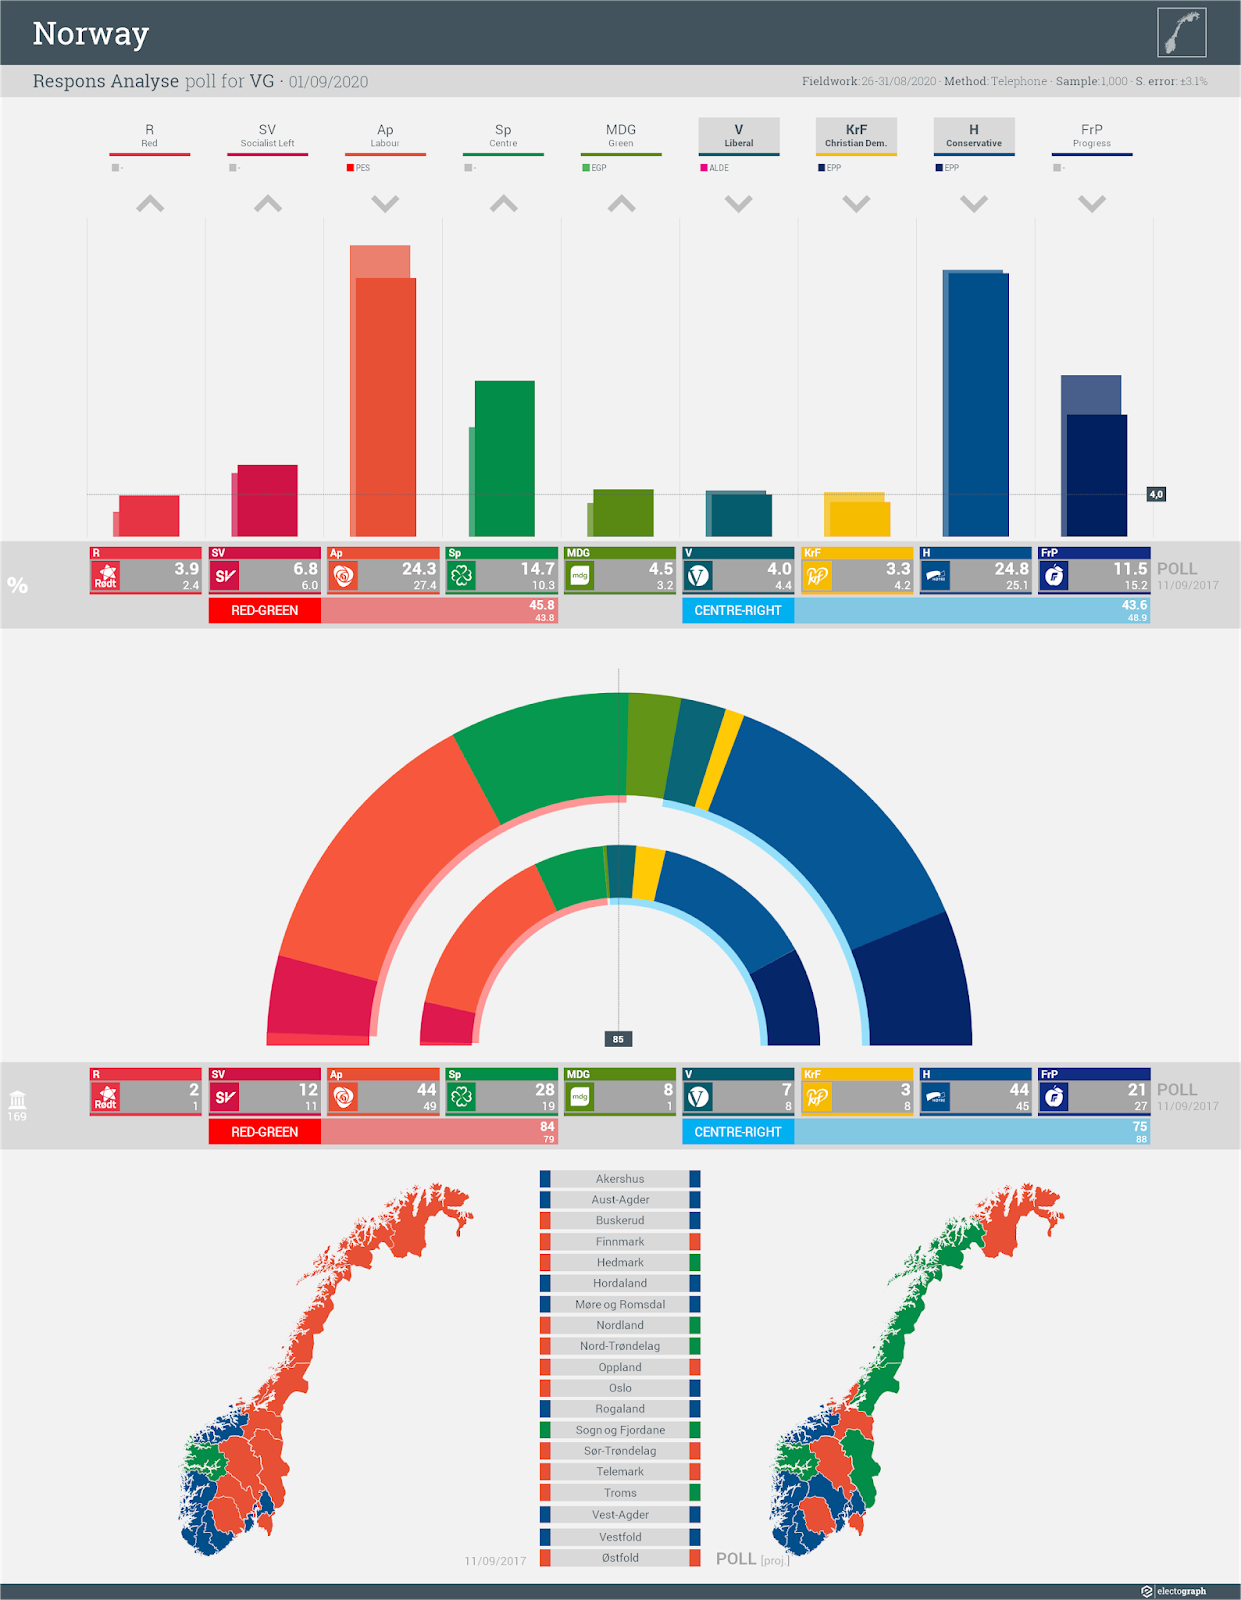 NORWAY: Respons Analyse poll chart for VG, 1 September 2020